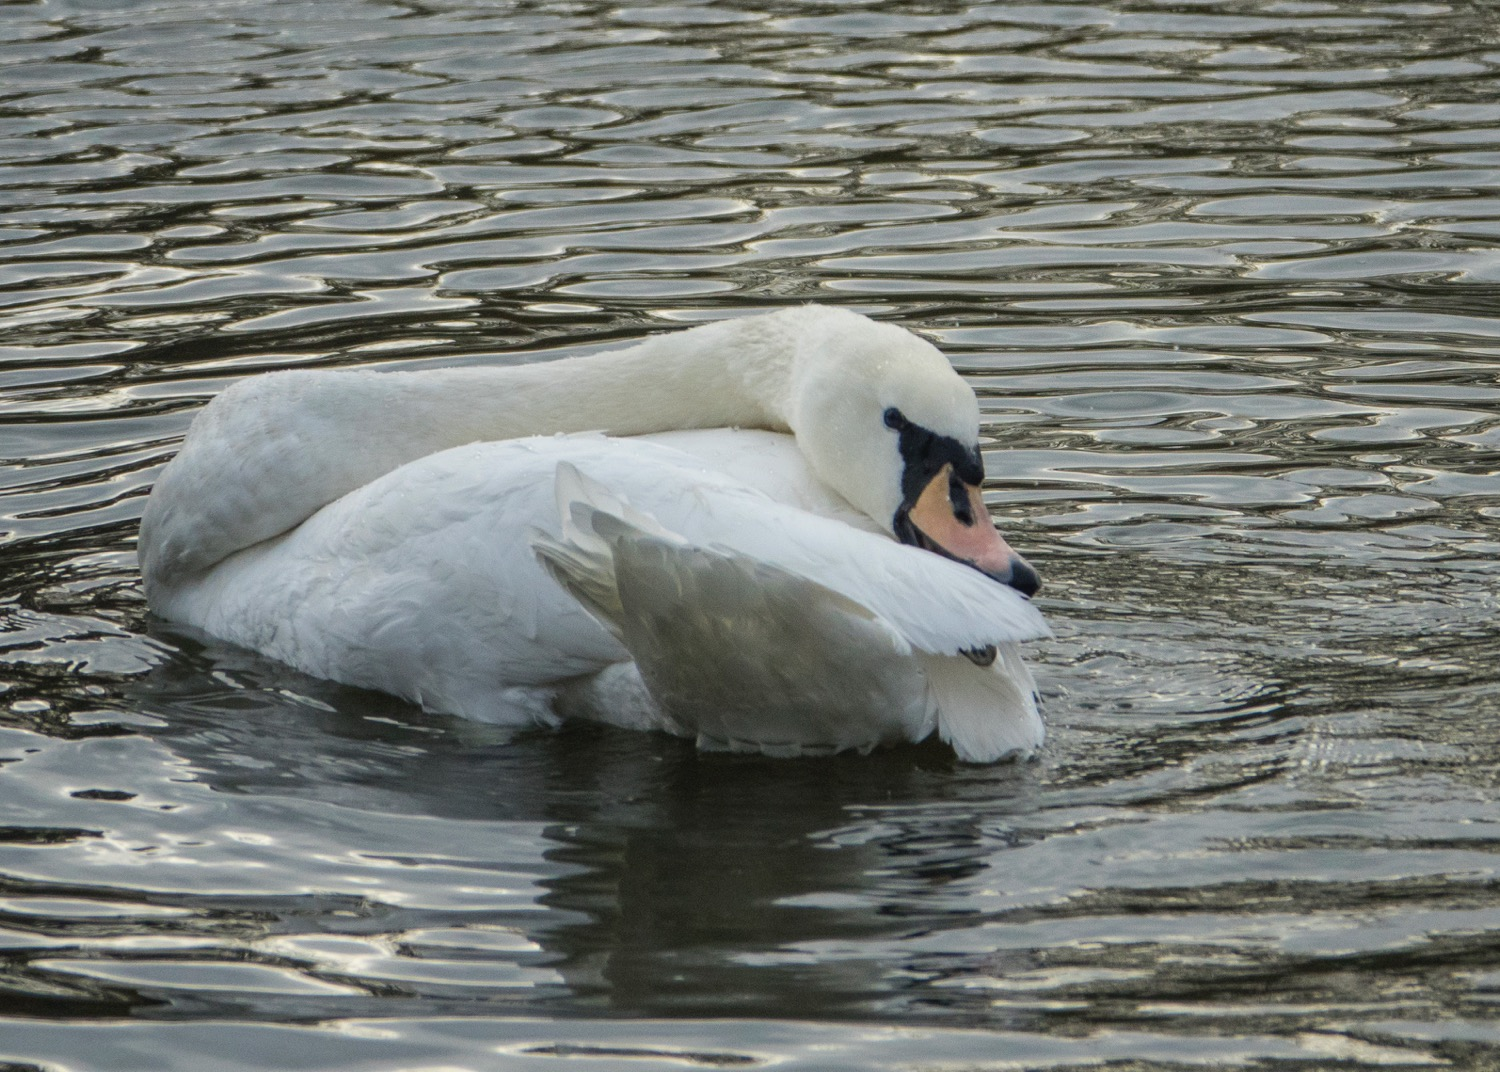 And there were swans